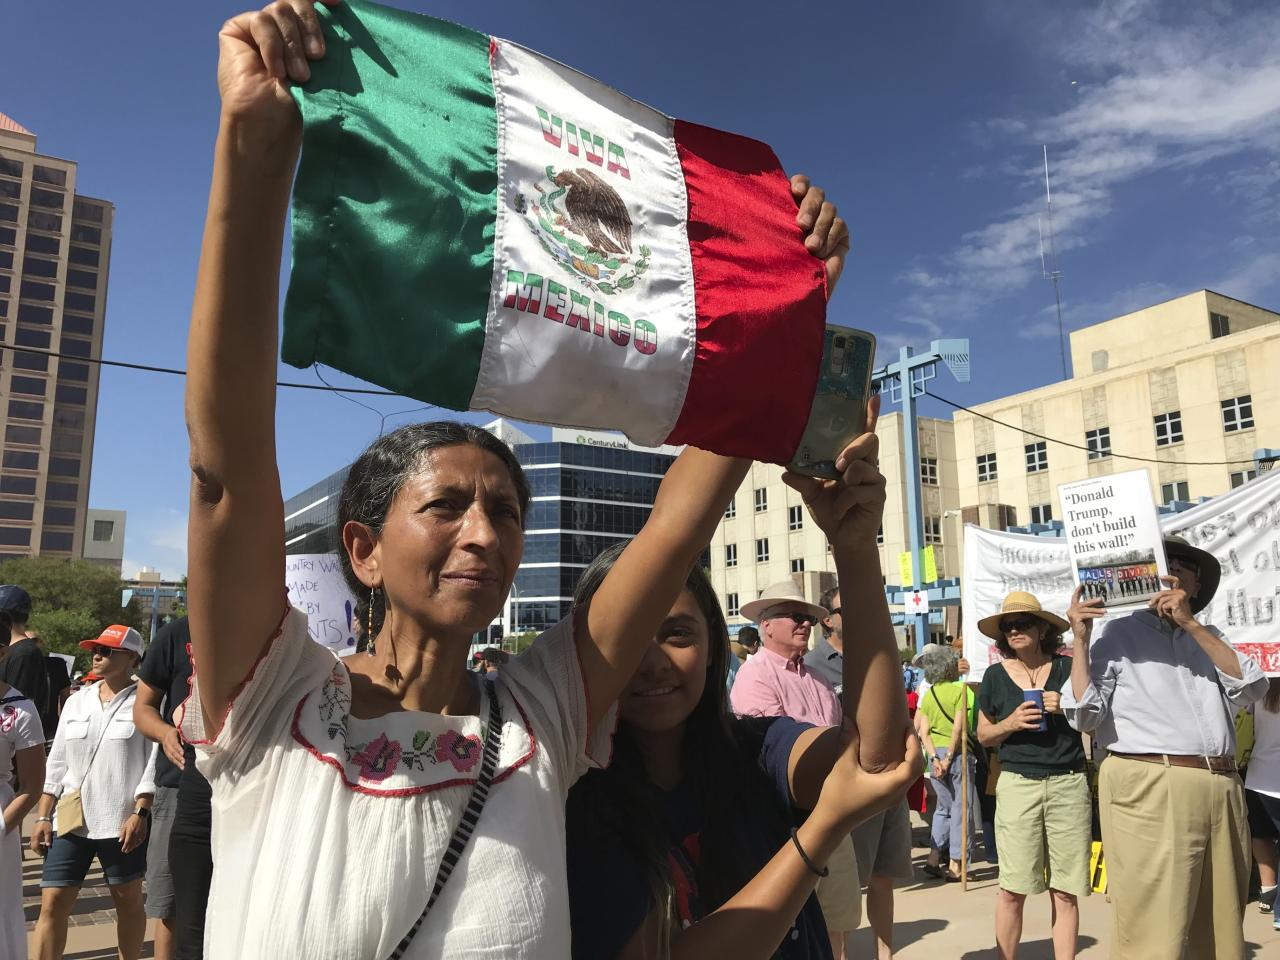 Hundreds Gather in Pittsfield to Protest Trump's Immigration Policies